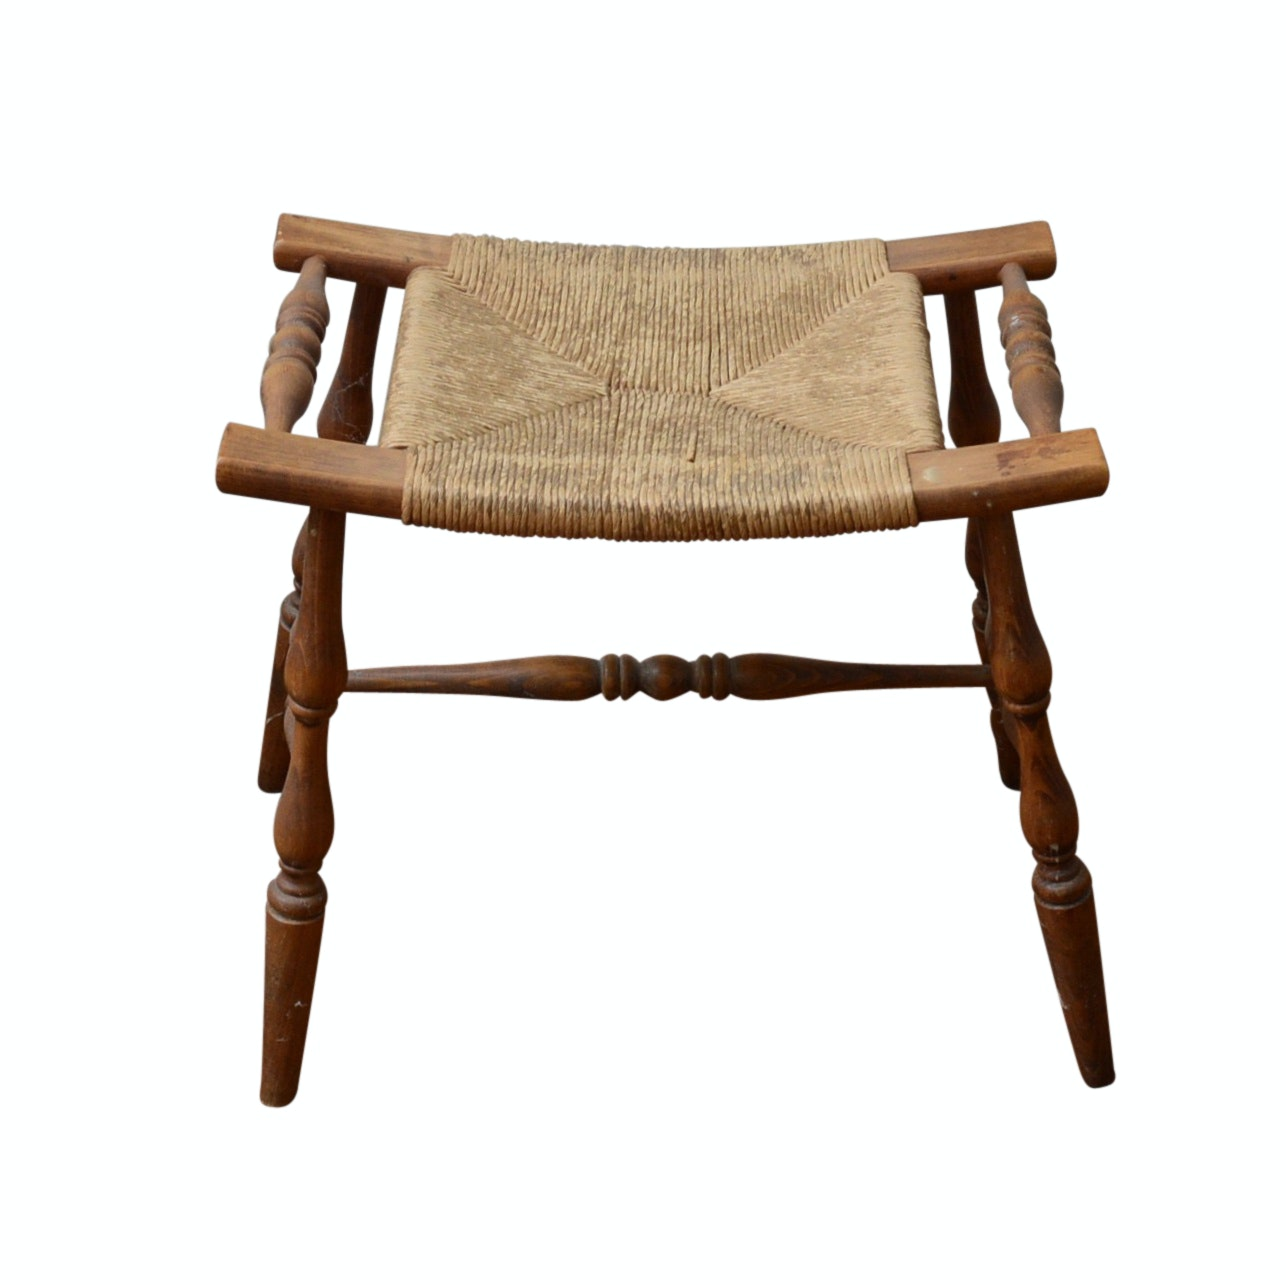 Antique Hand-Crafted Wooden Stool